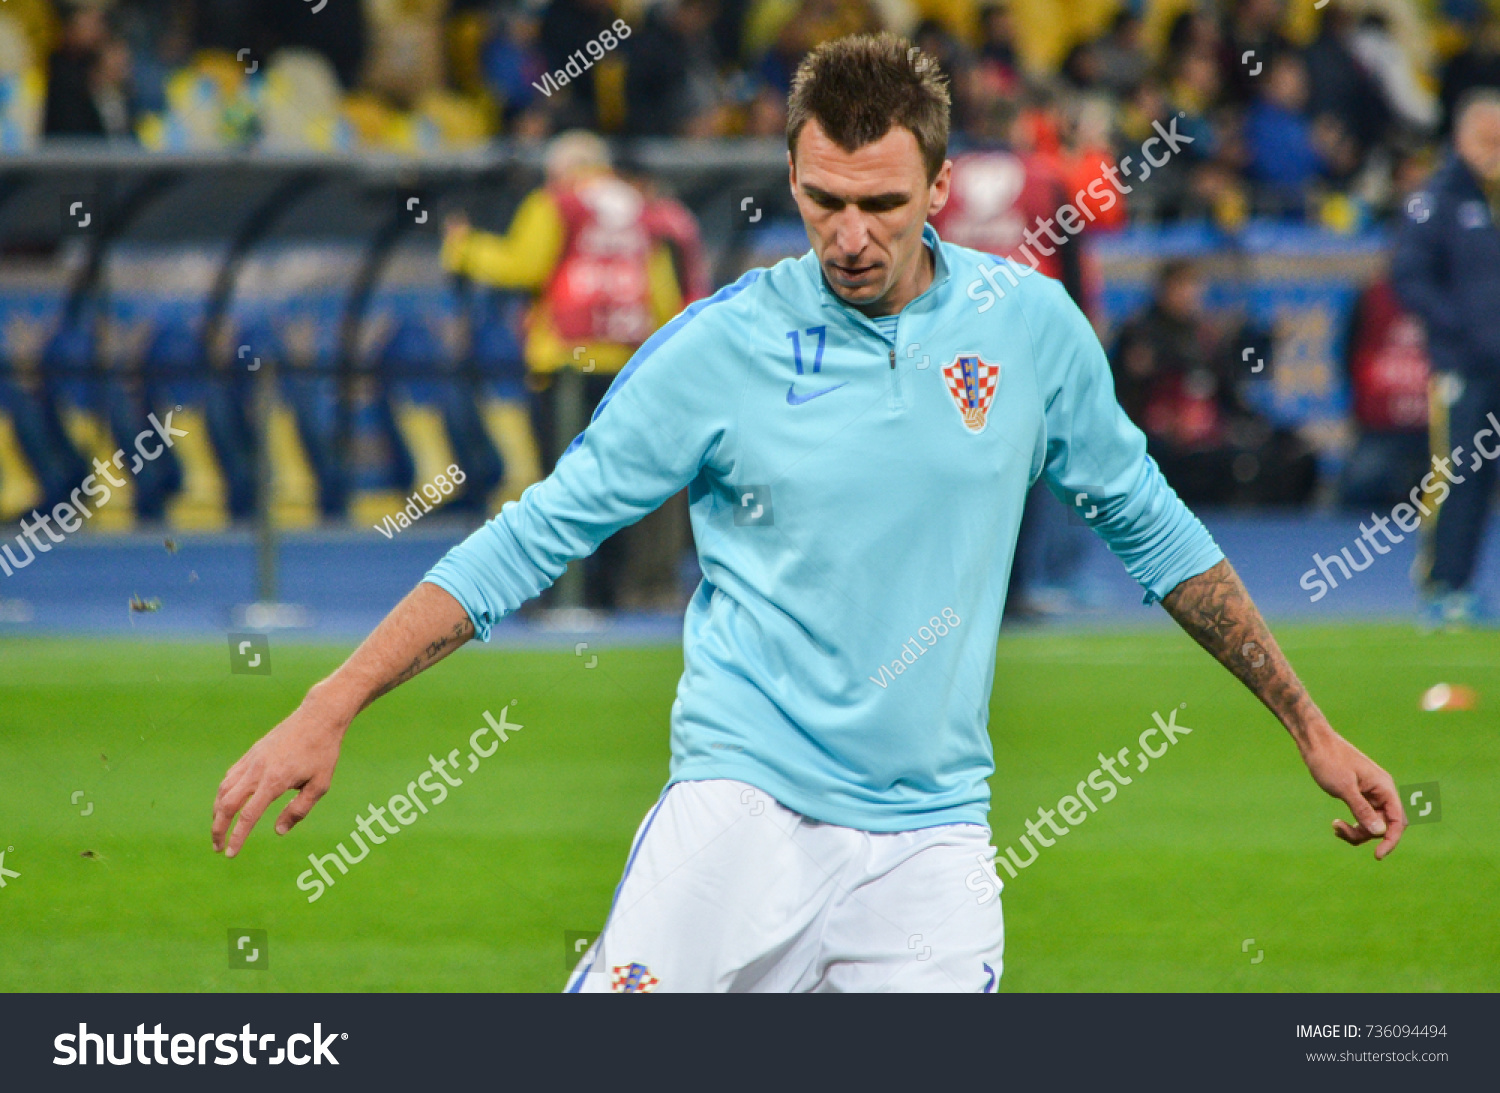 Top Europe World Cup 2018 - stock-photo-kiev-ukraine-october-mario-mandzukic-during-the-fifa-world-cup-qualifying-europe-736094494  Collection_594856 .jpg